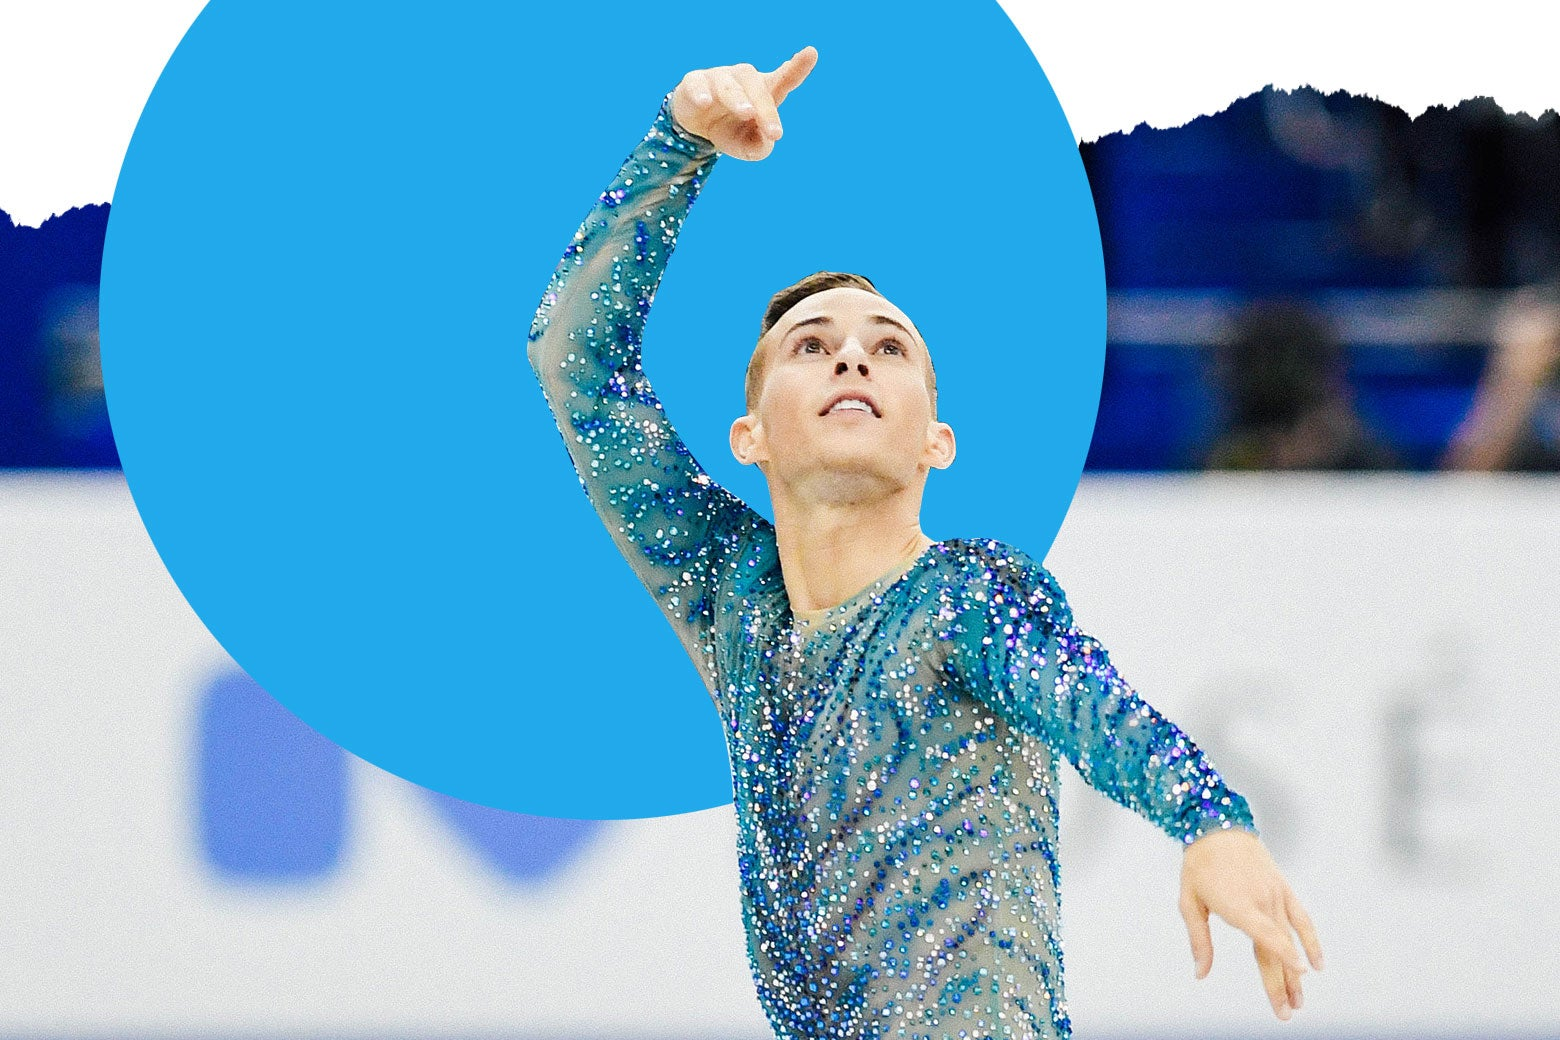 Adam Rippon skating in a sparkly turquoise top.